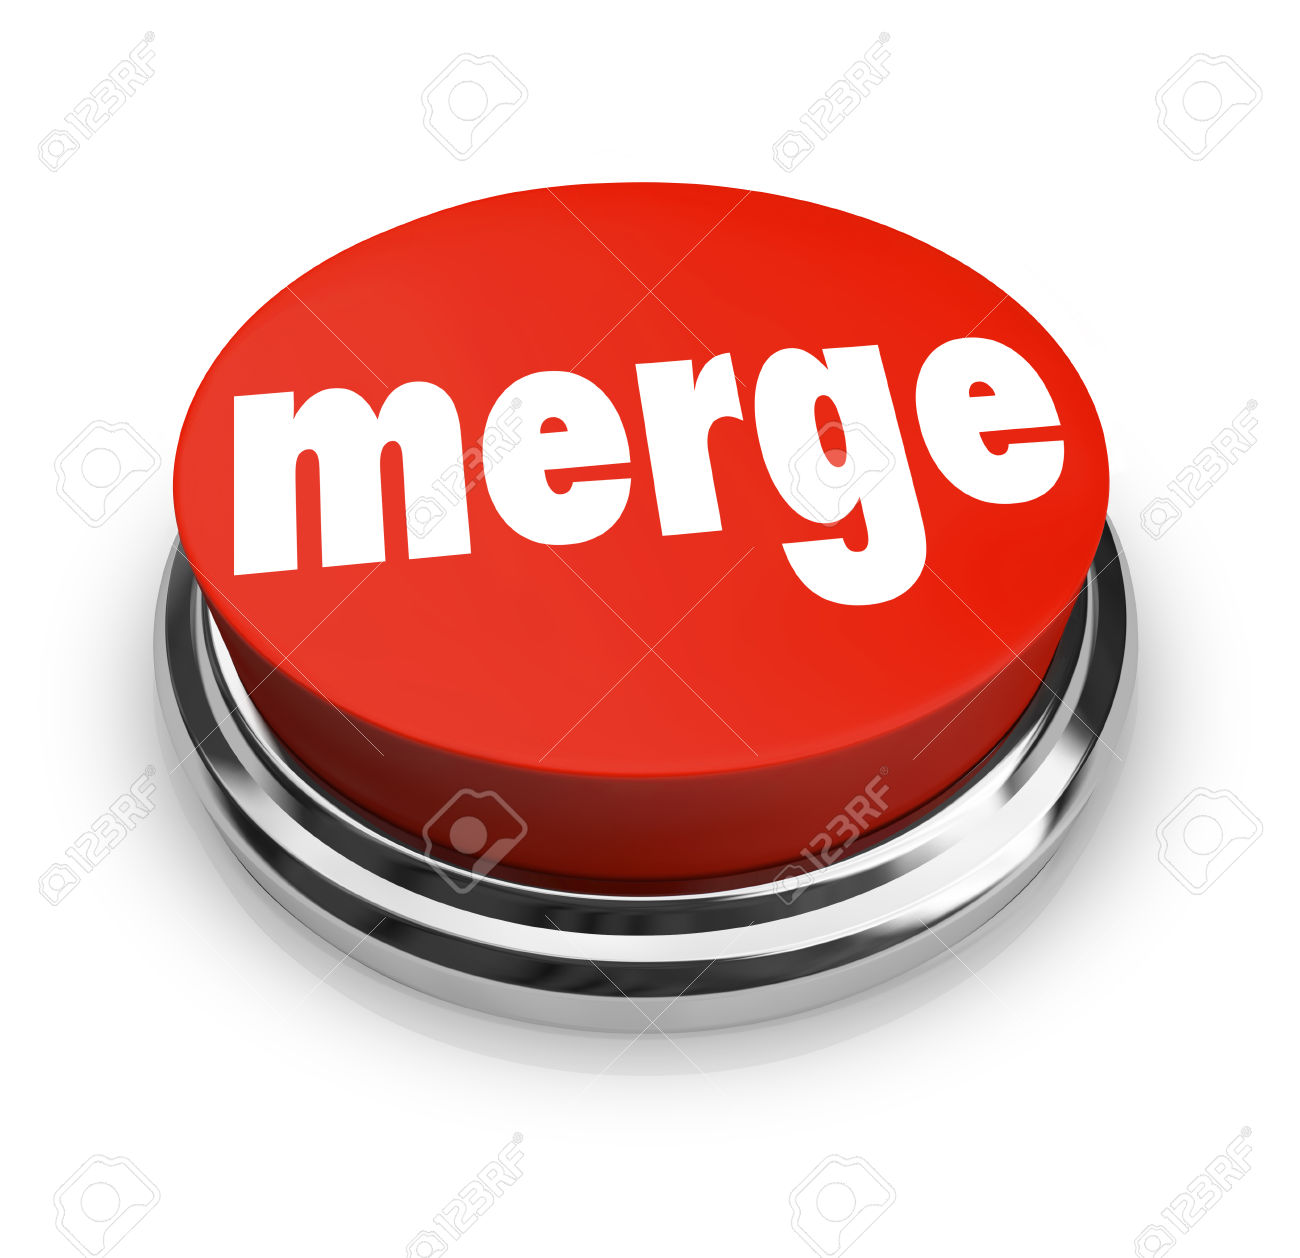 Merge Word On A Big Red Button To Illustrate Combining Companies.